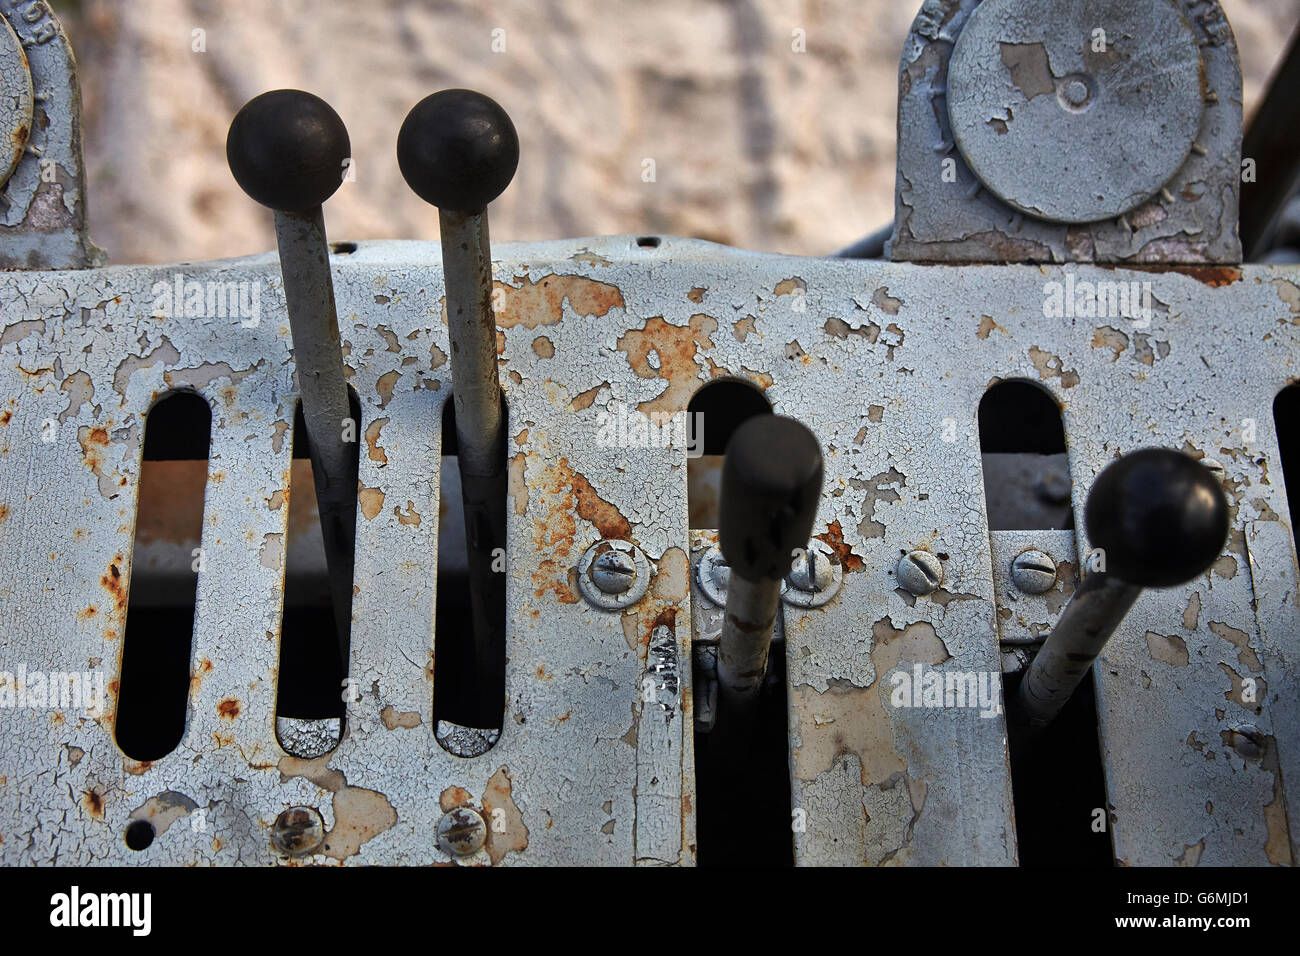 Levers in a tractor - Stock Image